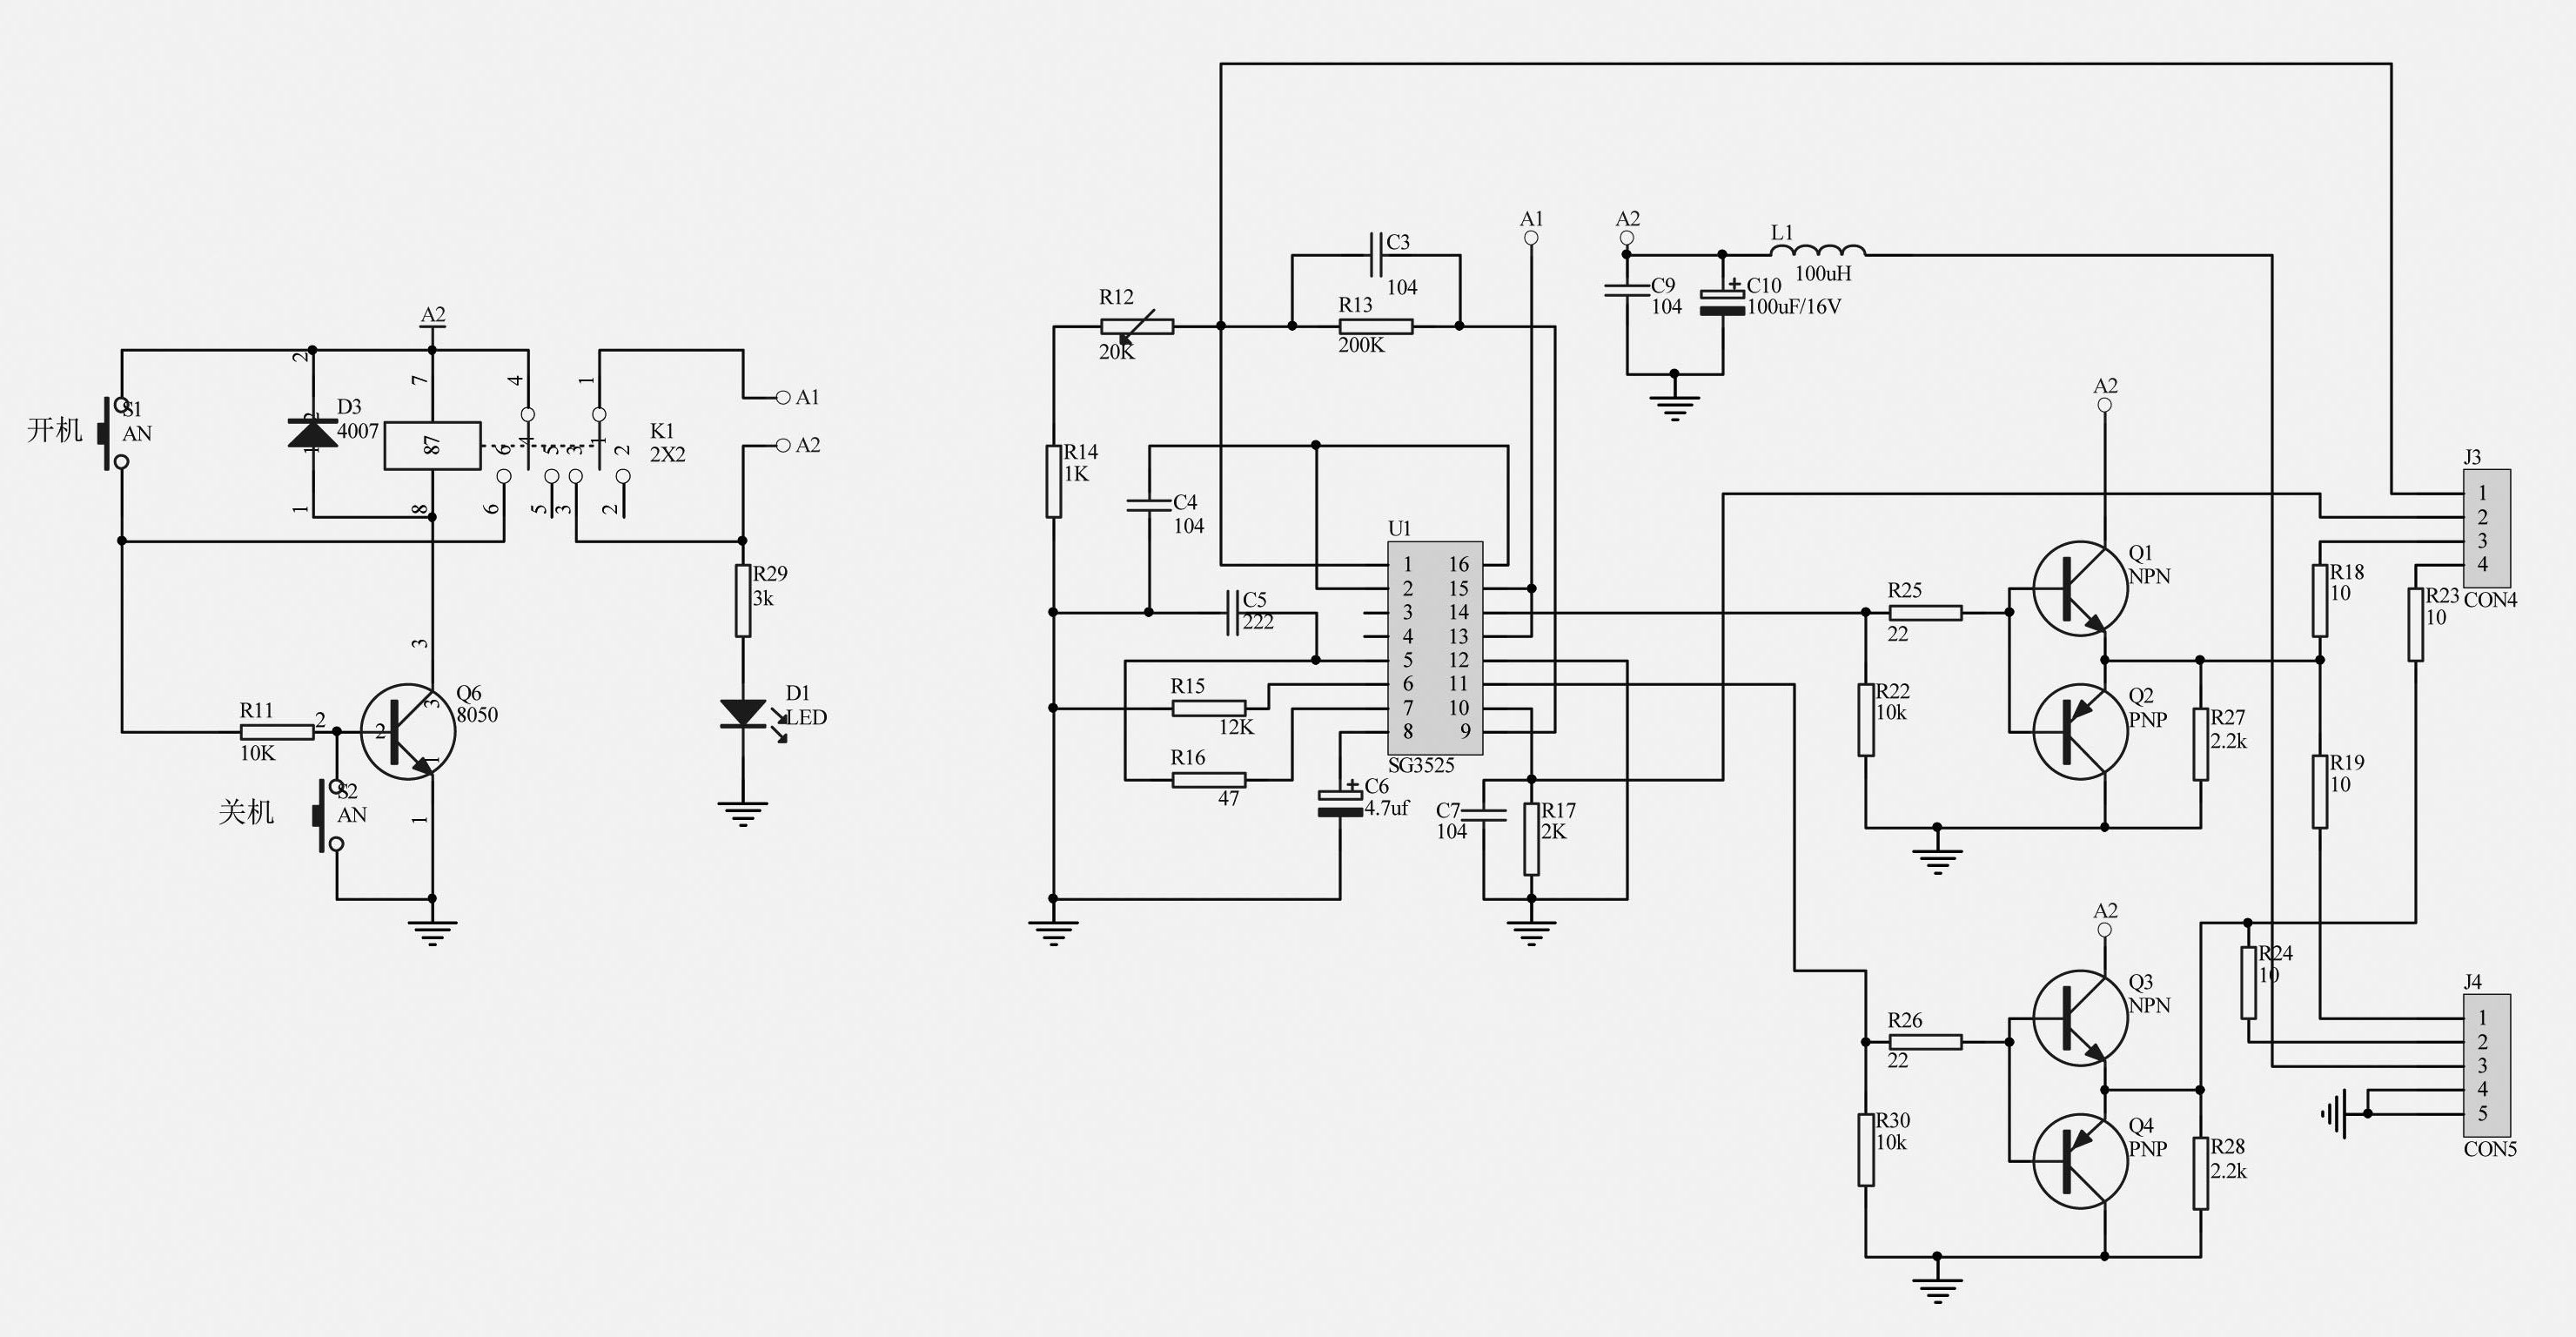 1000w 12v Dc Home Power Inverter Circuit Board Design From The Schematics It Can Be Seen If An In Output Is Ac Or Coupled Voltage Boost Diagram